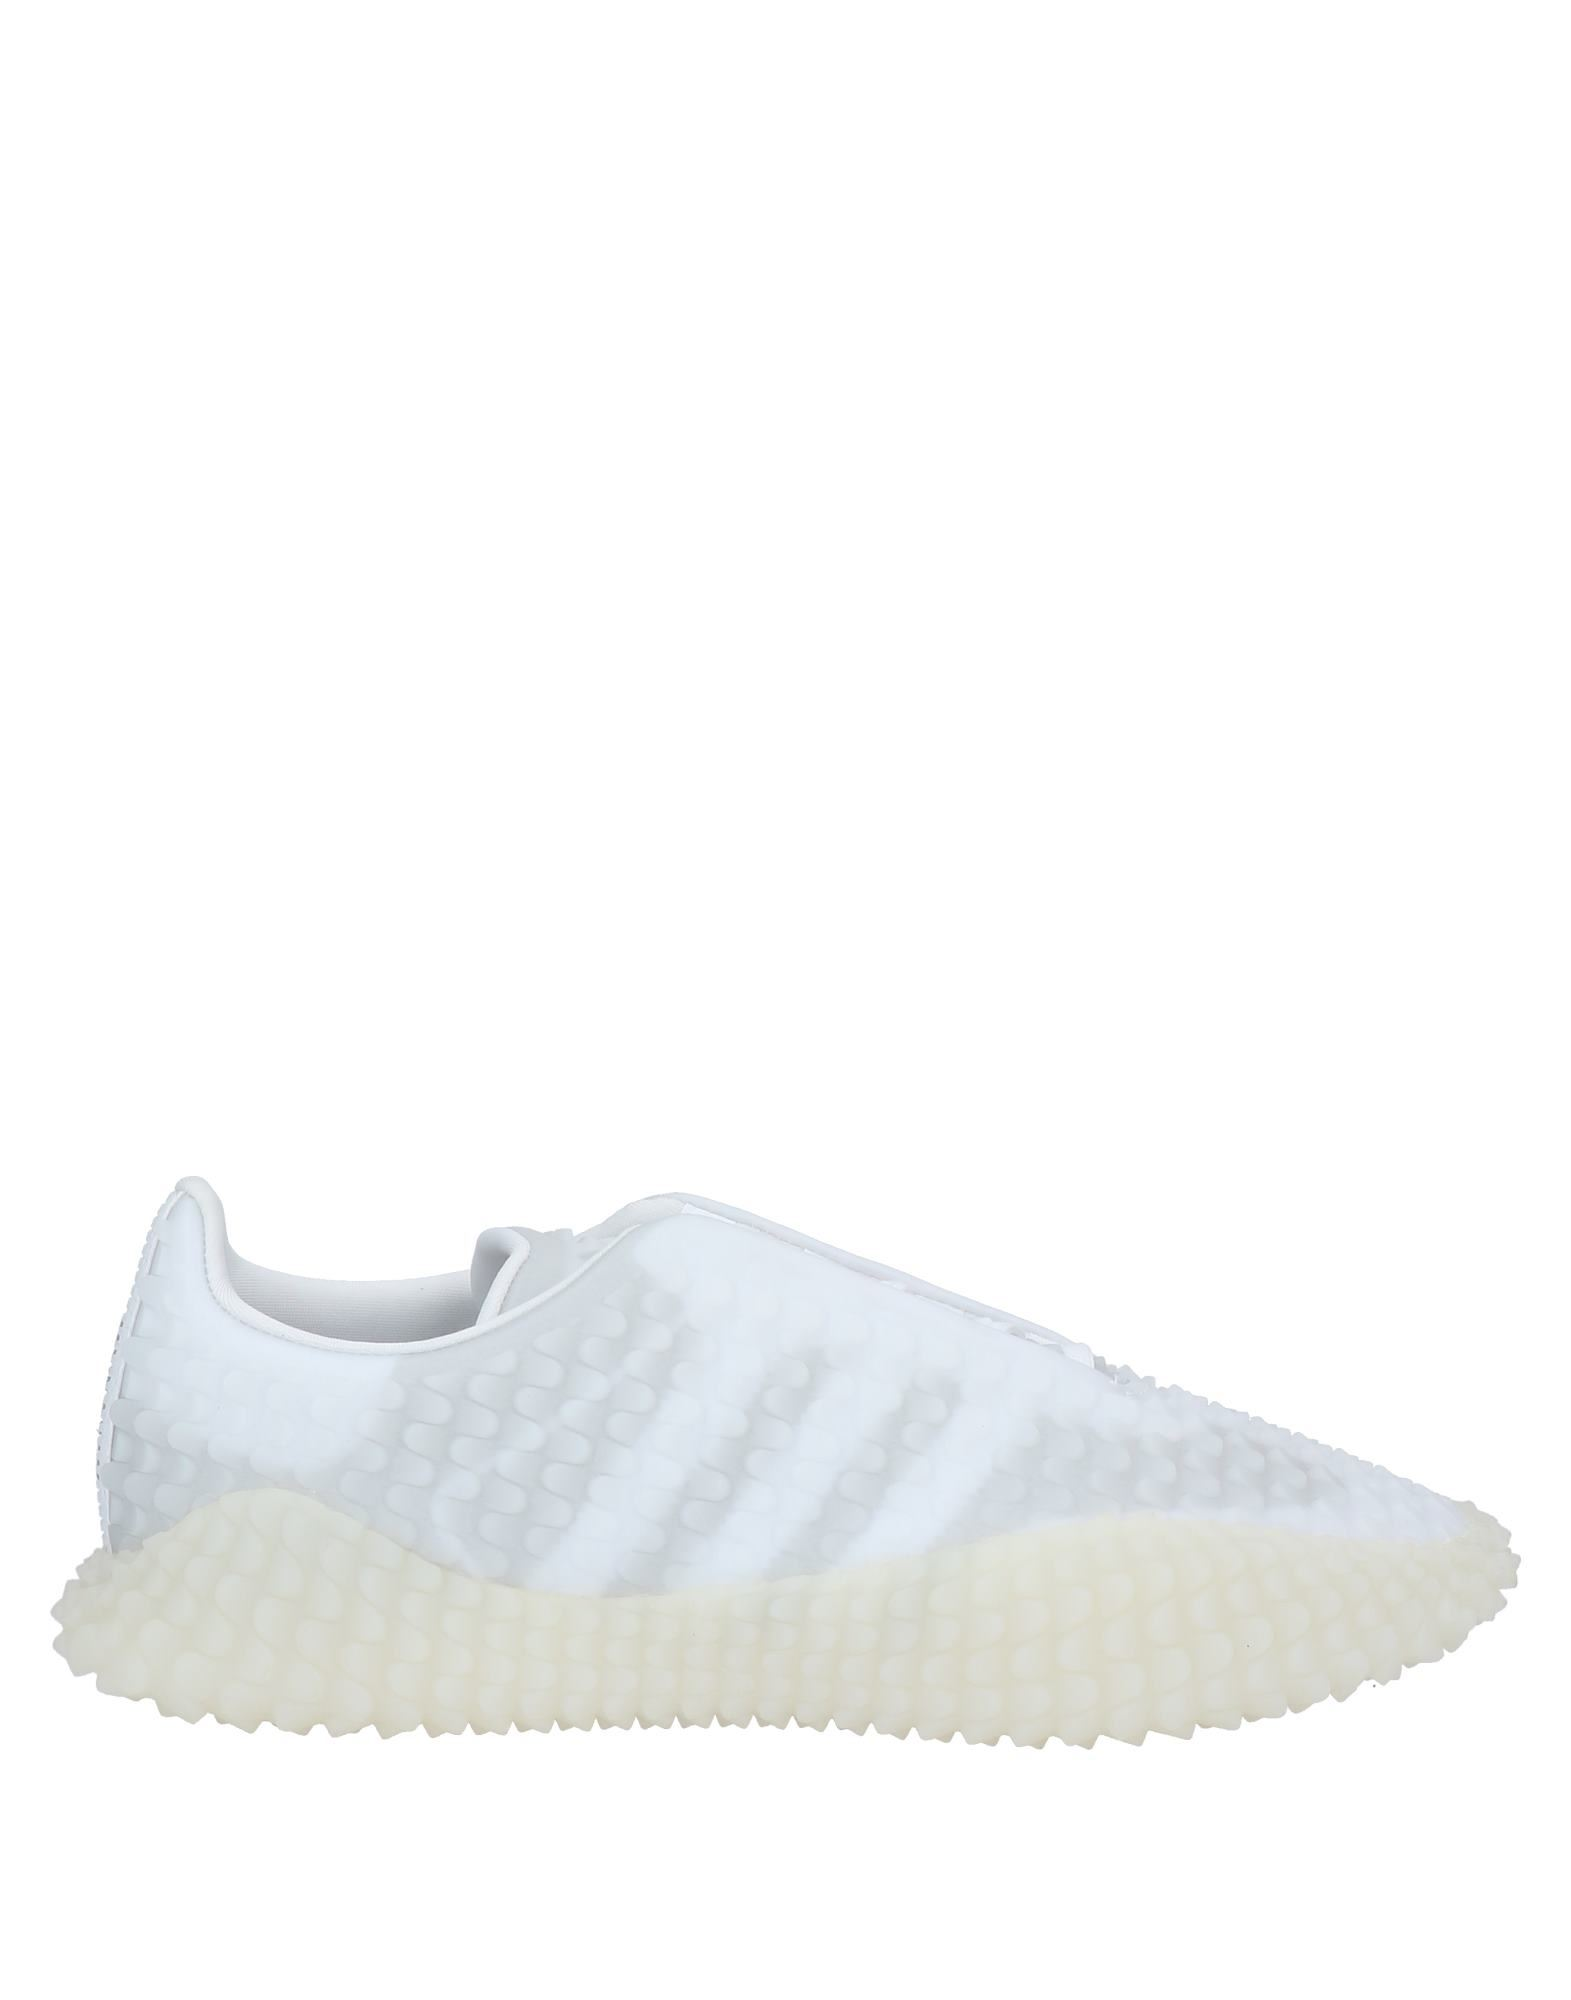 Adidas By Craig Green Sneakers In White